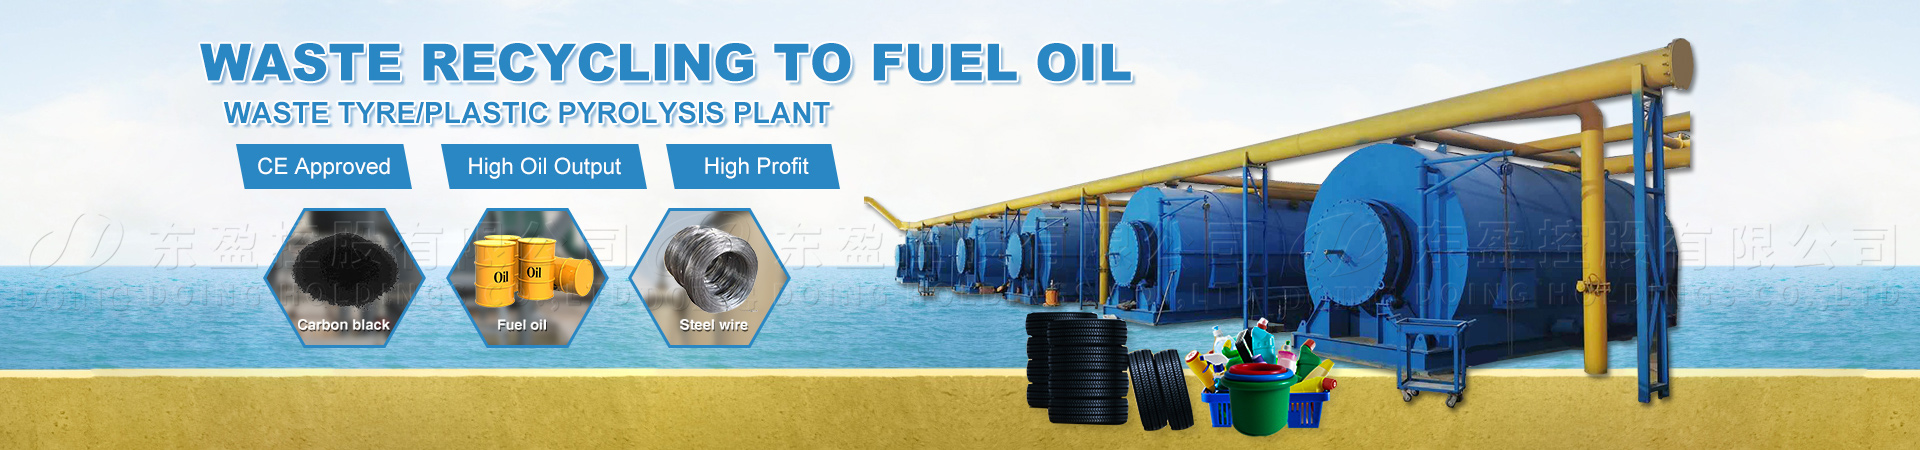 waste recycling to fuel oil